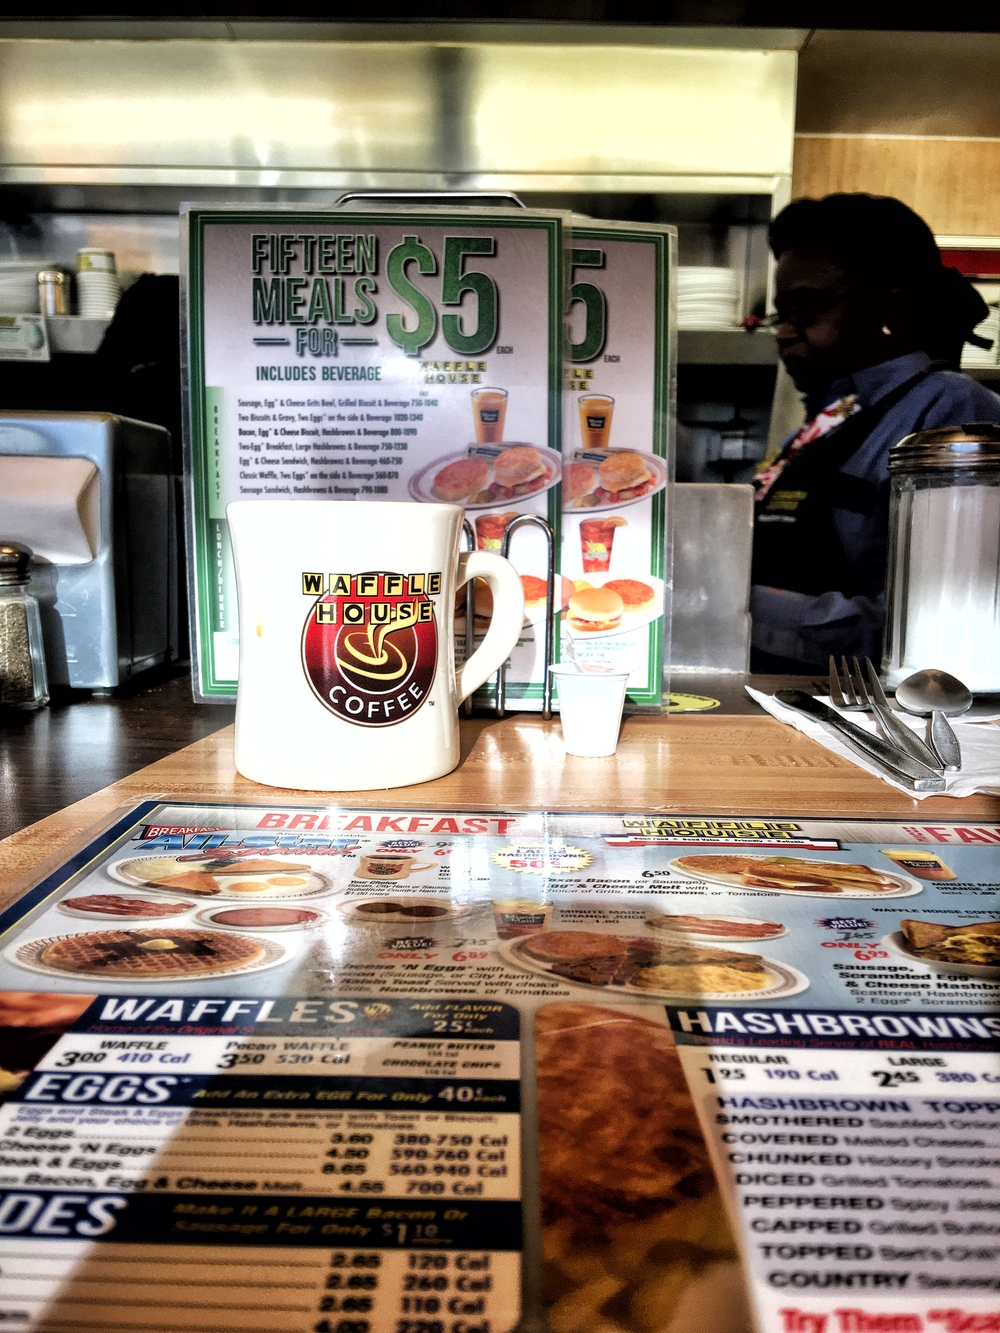 Waffle House is diner breakfast mecca in the deep south! En route to Congaree National Park in South Carolina.